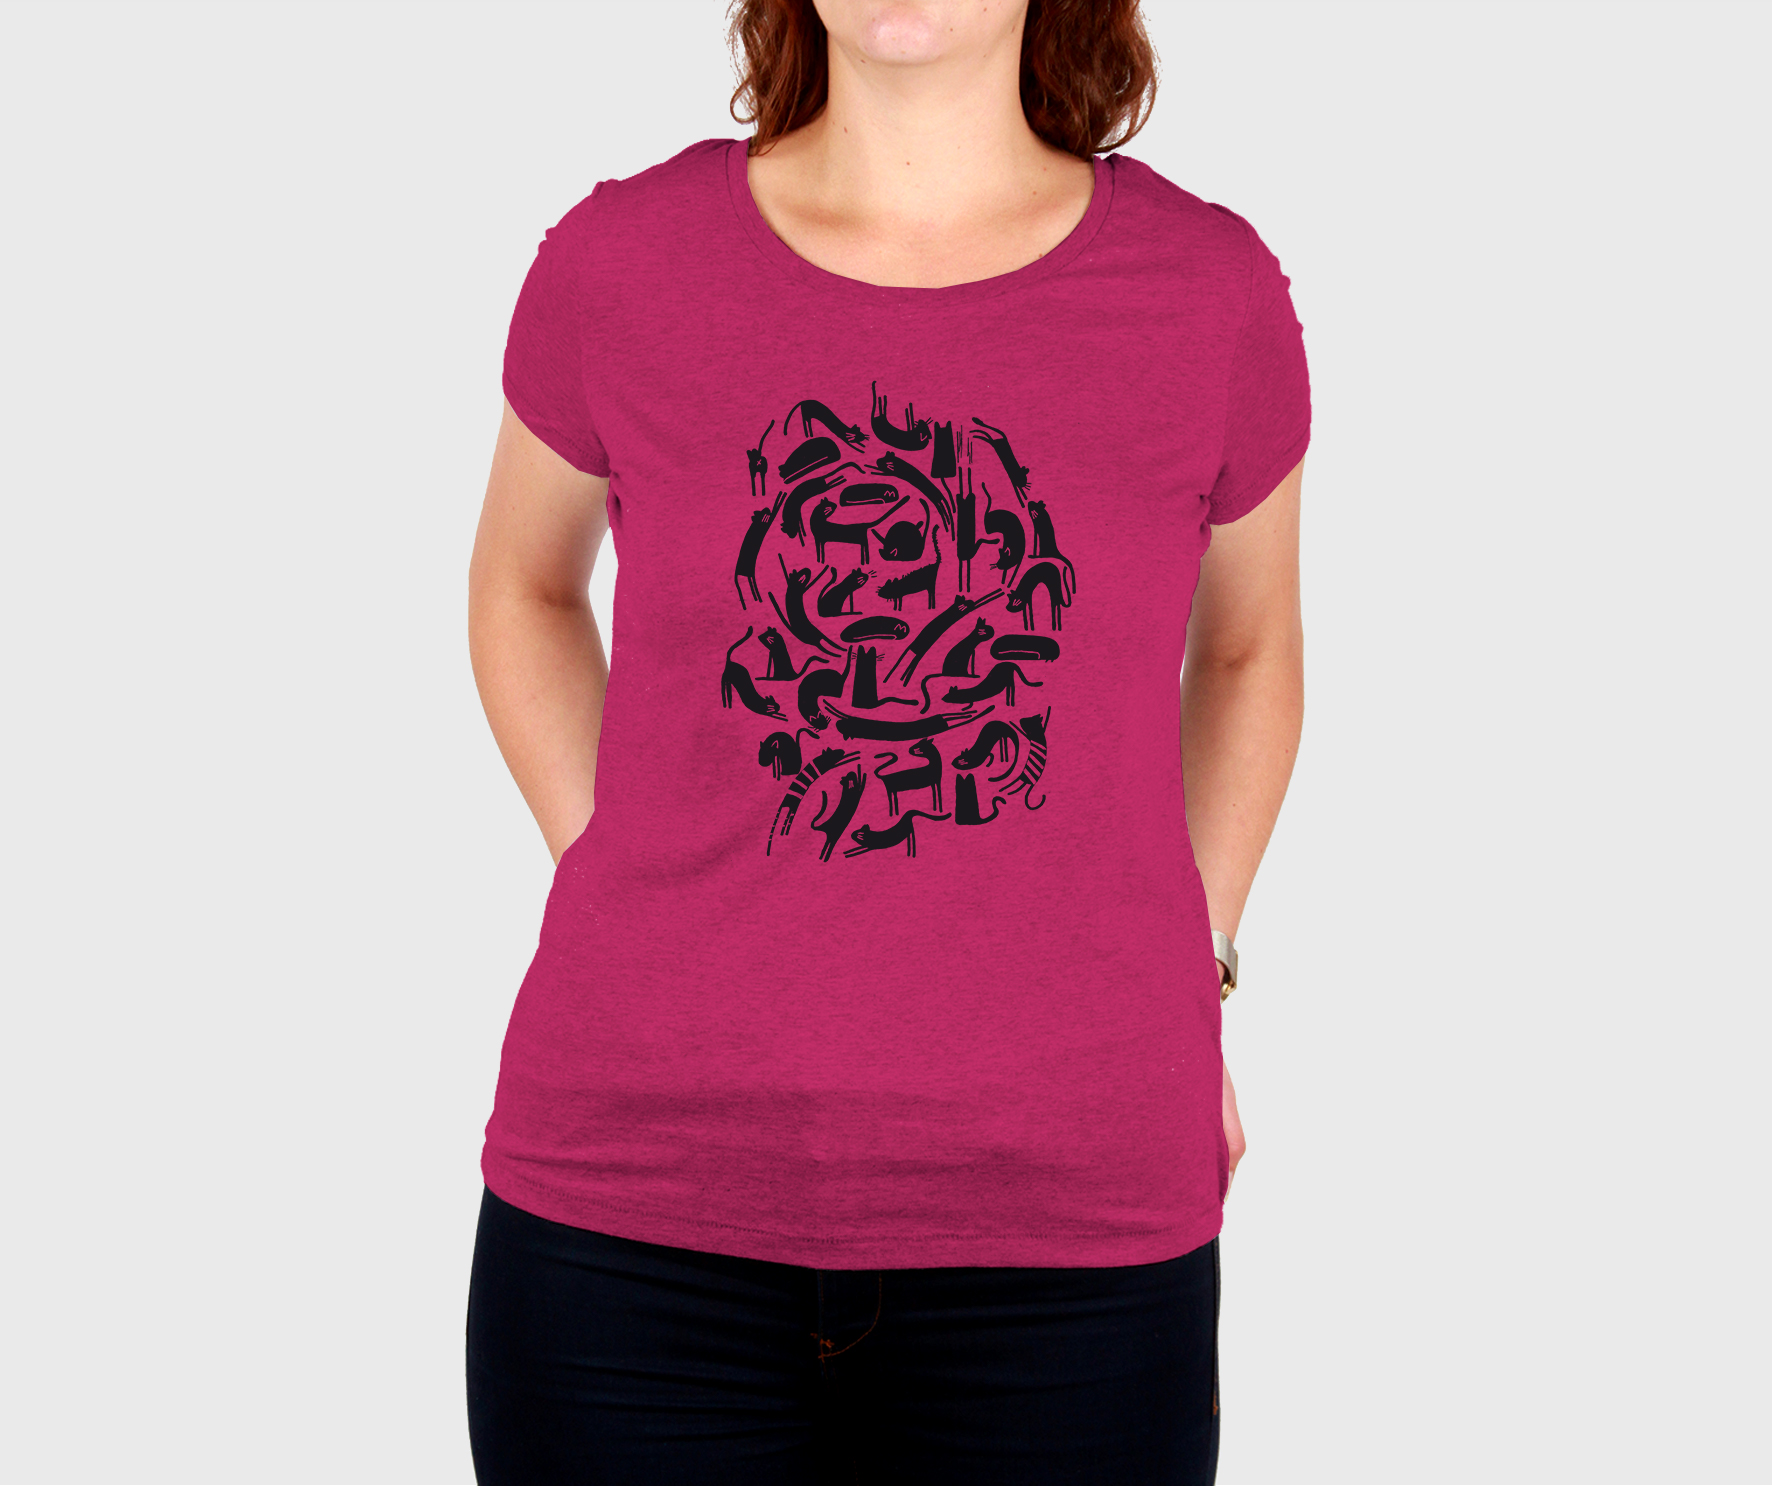 t shirt, t shirt chat, joli t shirt, moule a gaufres, creation, chats, orleans, made in france